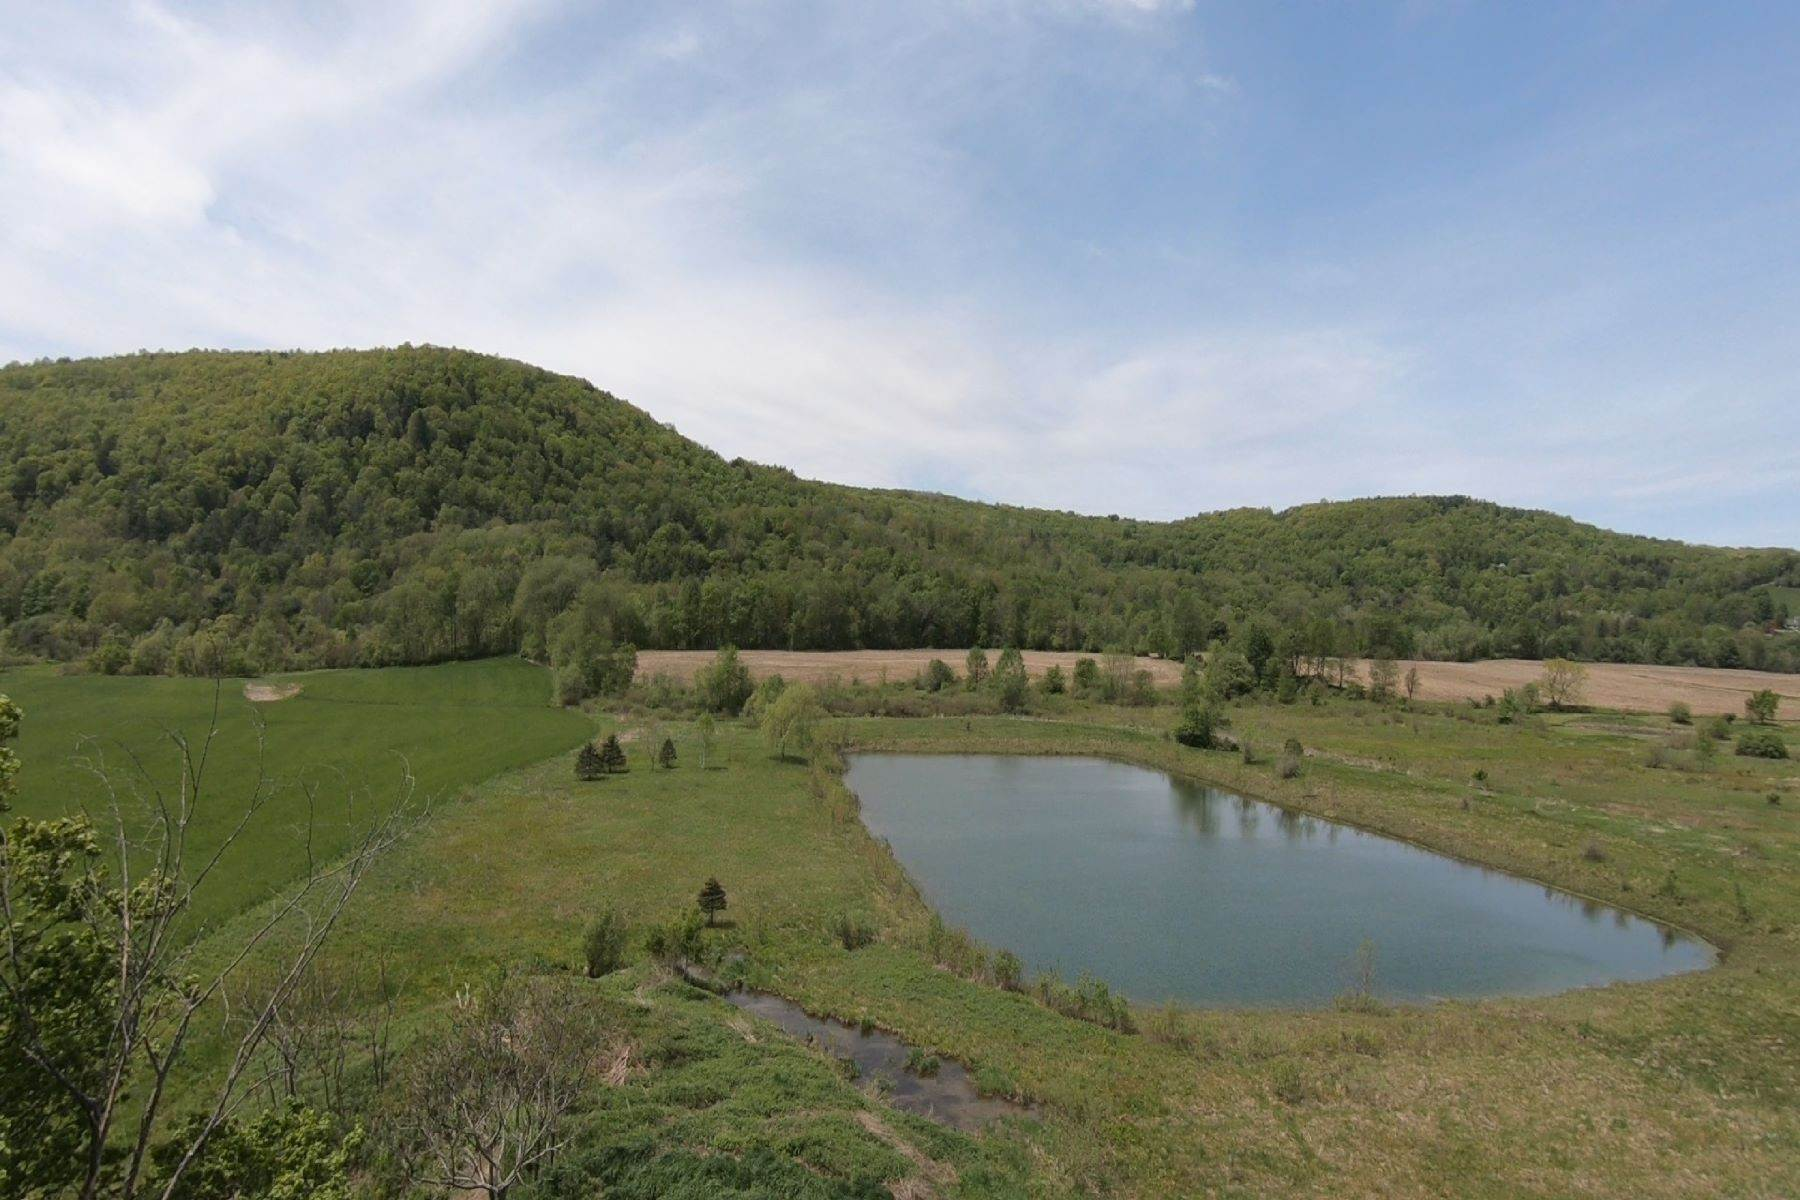 Land for Sale at Black Creek Valley Sportsman's Getaway 3041 County Route 30 Salem, New York 12865 United States